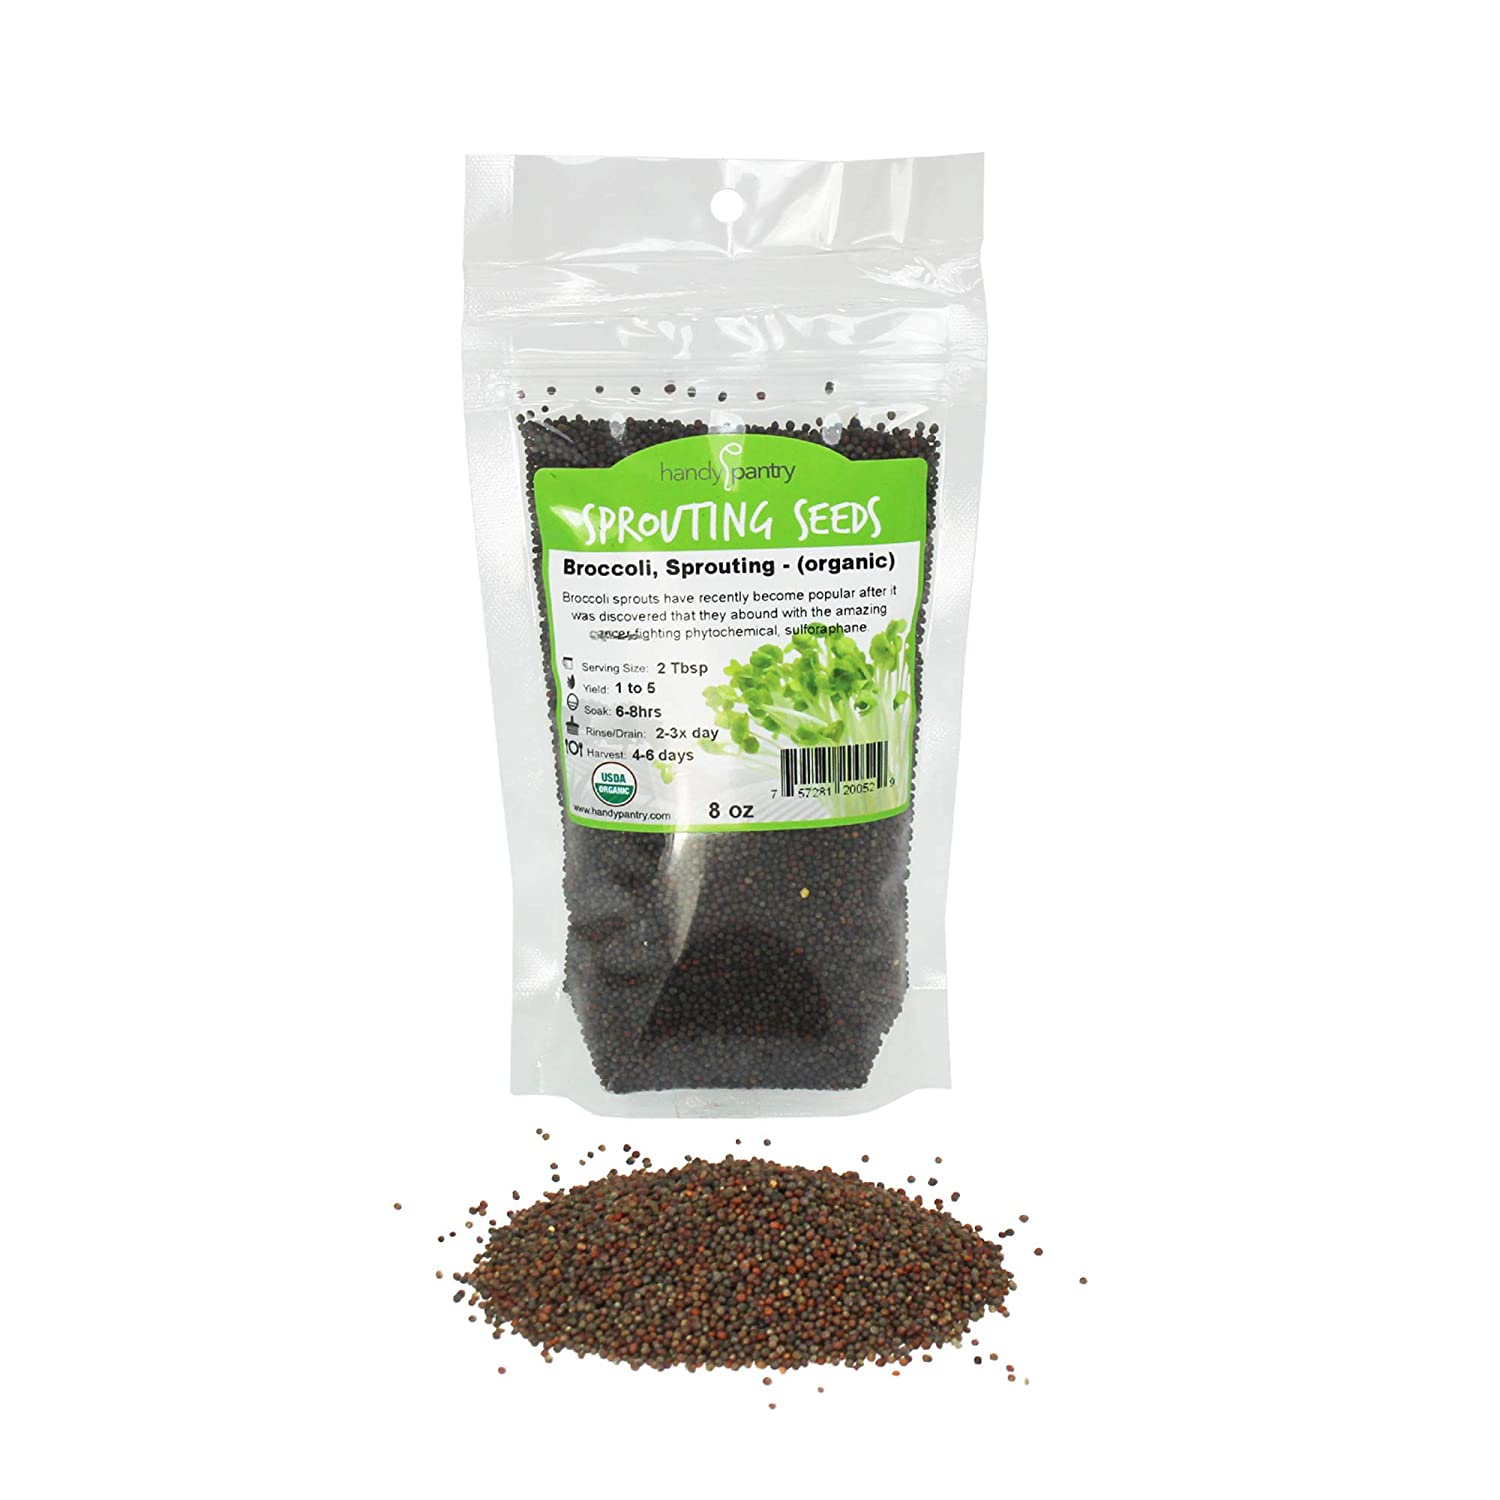 Organic Broccoli Sprouting Seeds By Handy Pantry | 8 oz. Resealable Bag | Non-GMO Broccoli Sprouts Seeds, Contains Sulforaphane